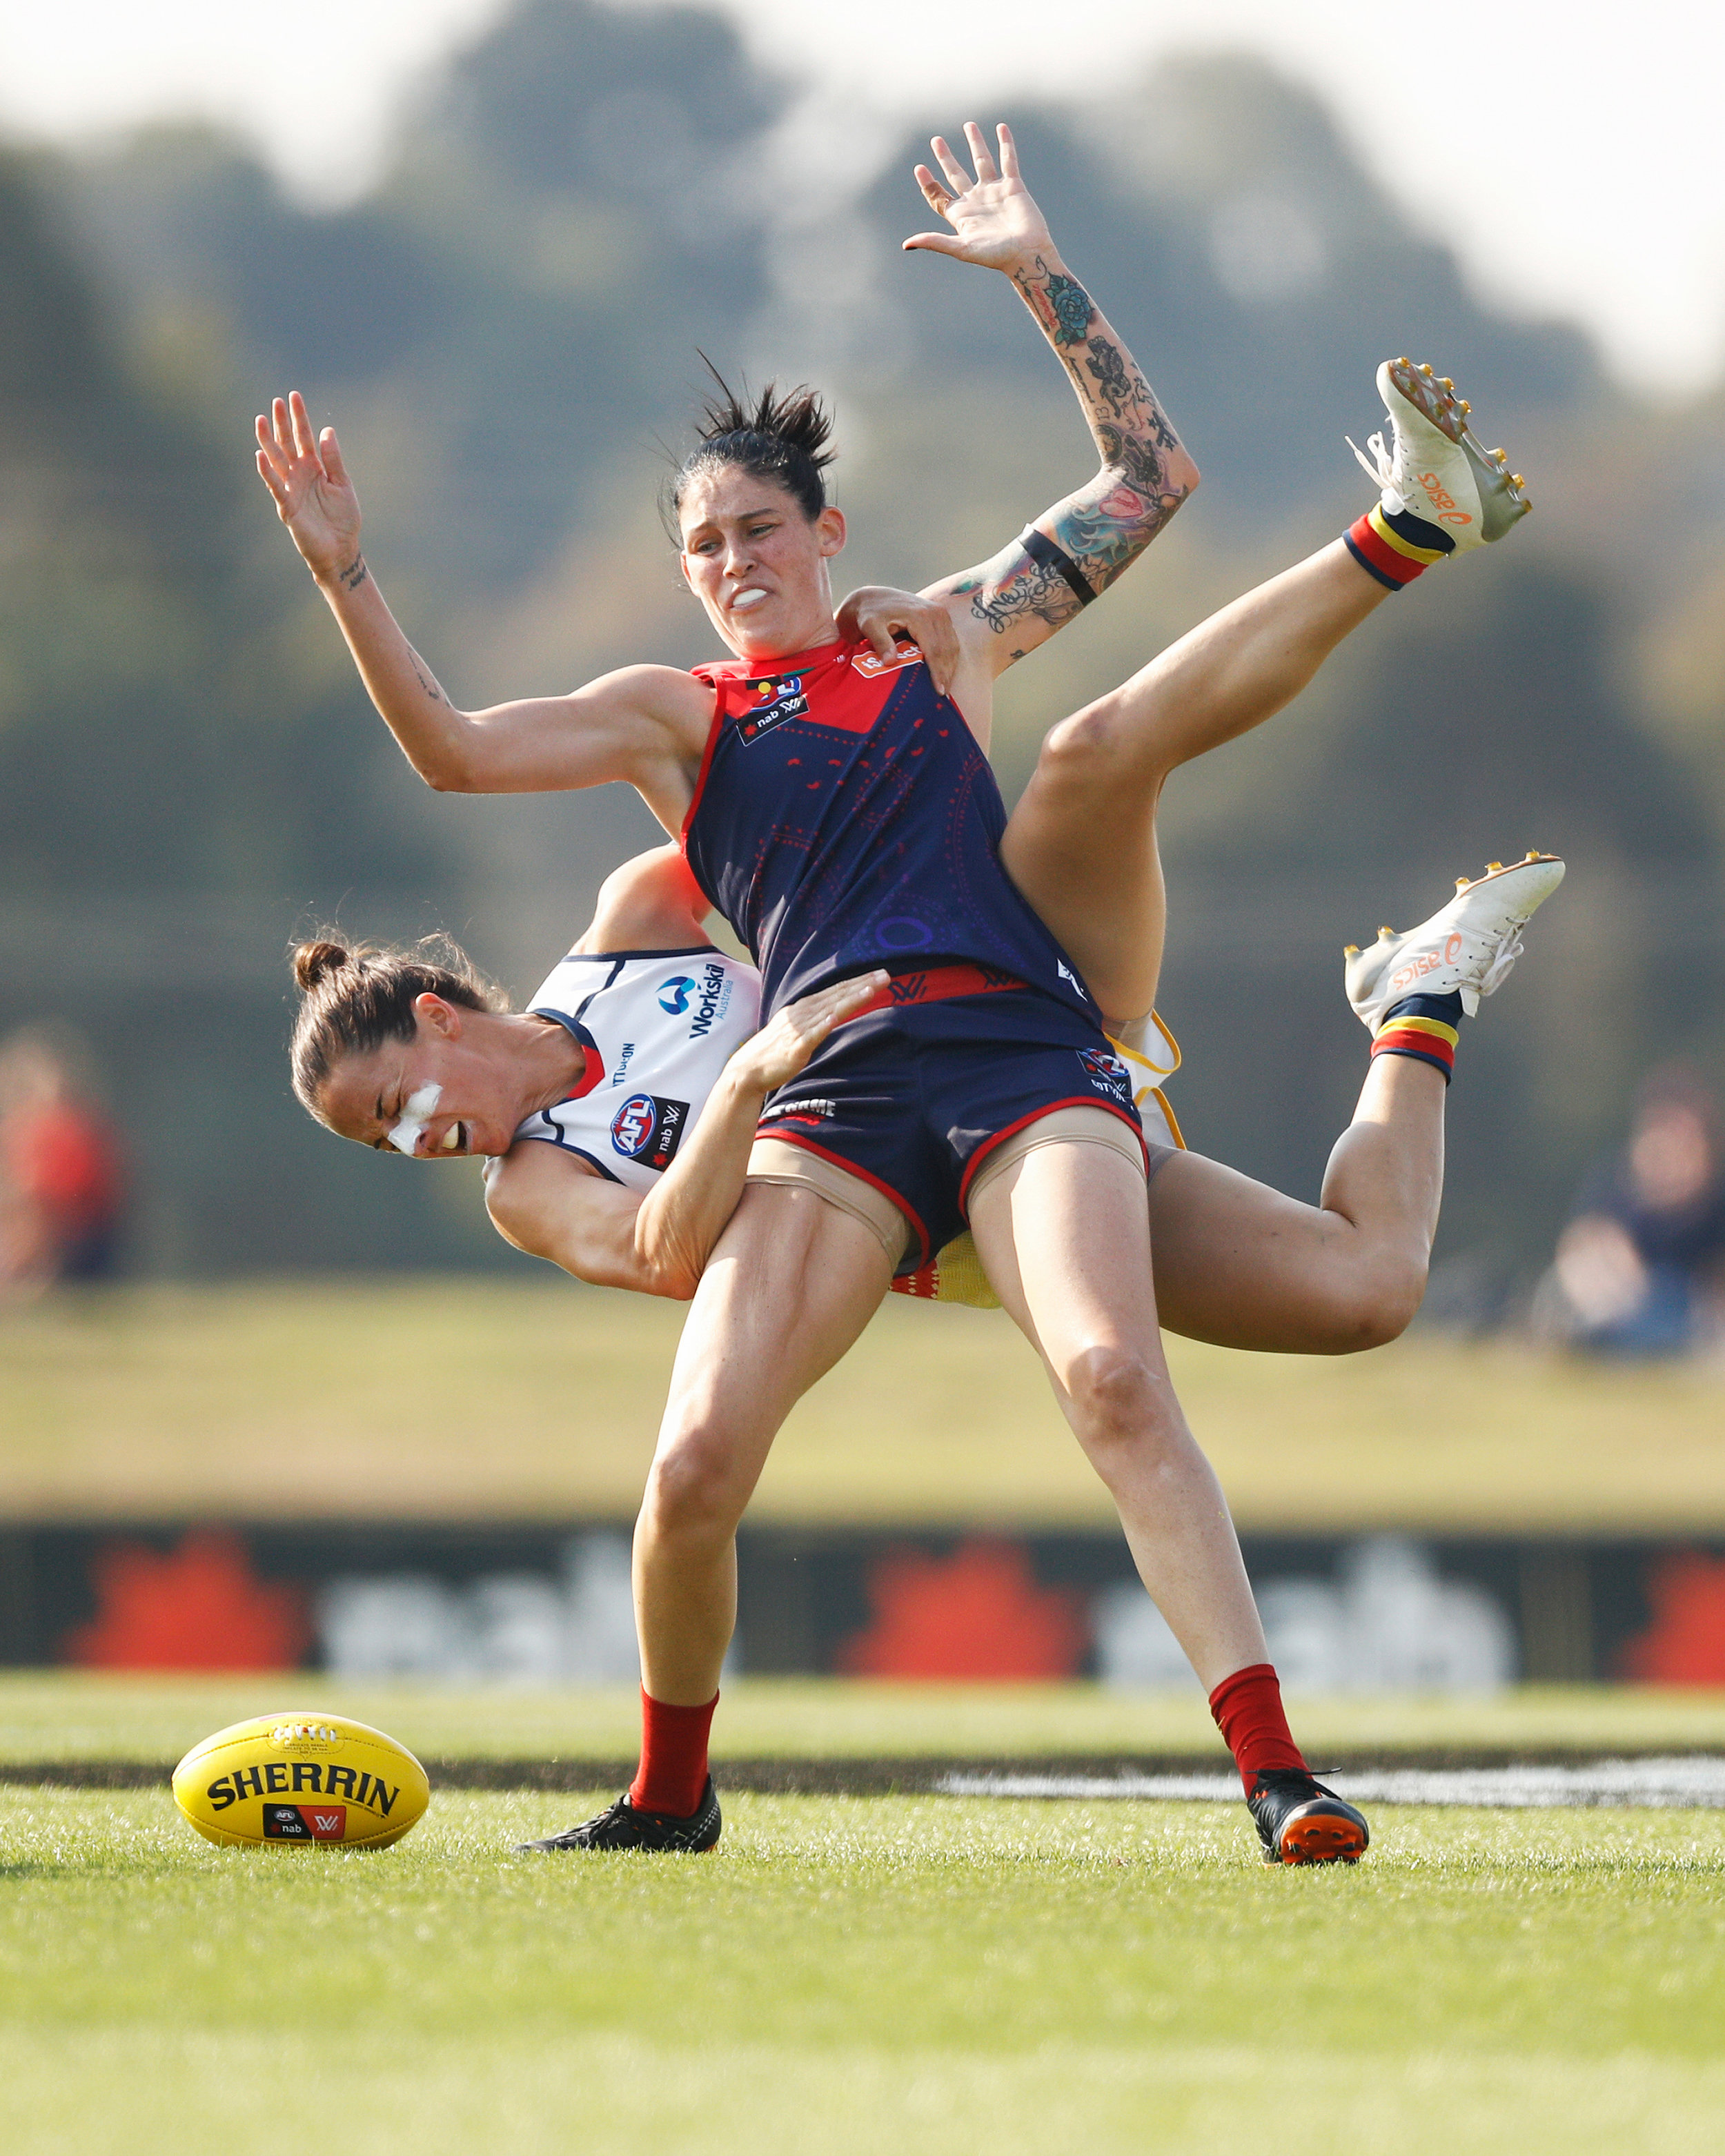 Daniel Pockett  'Clock Tackle'  Angela Foley and Tegan Cunningham, VIC AFLW